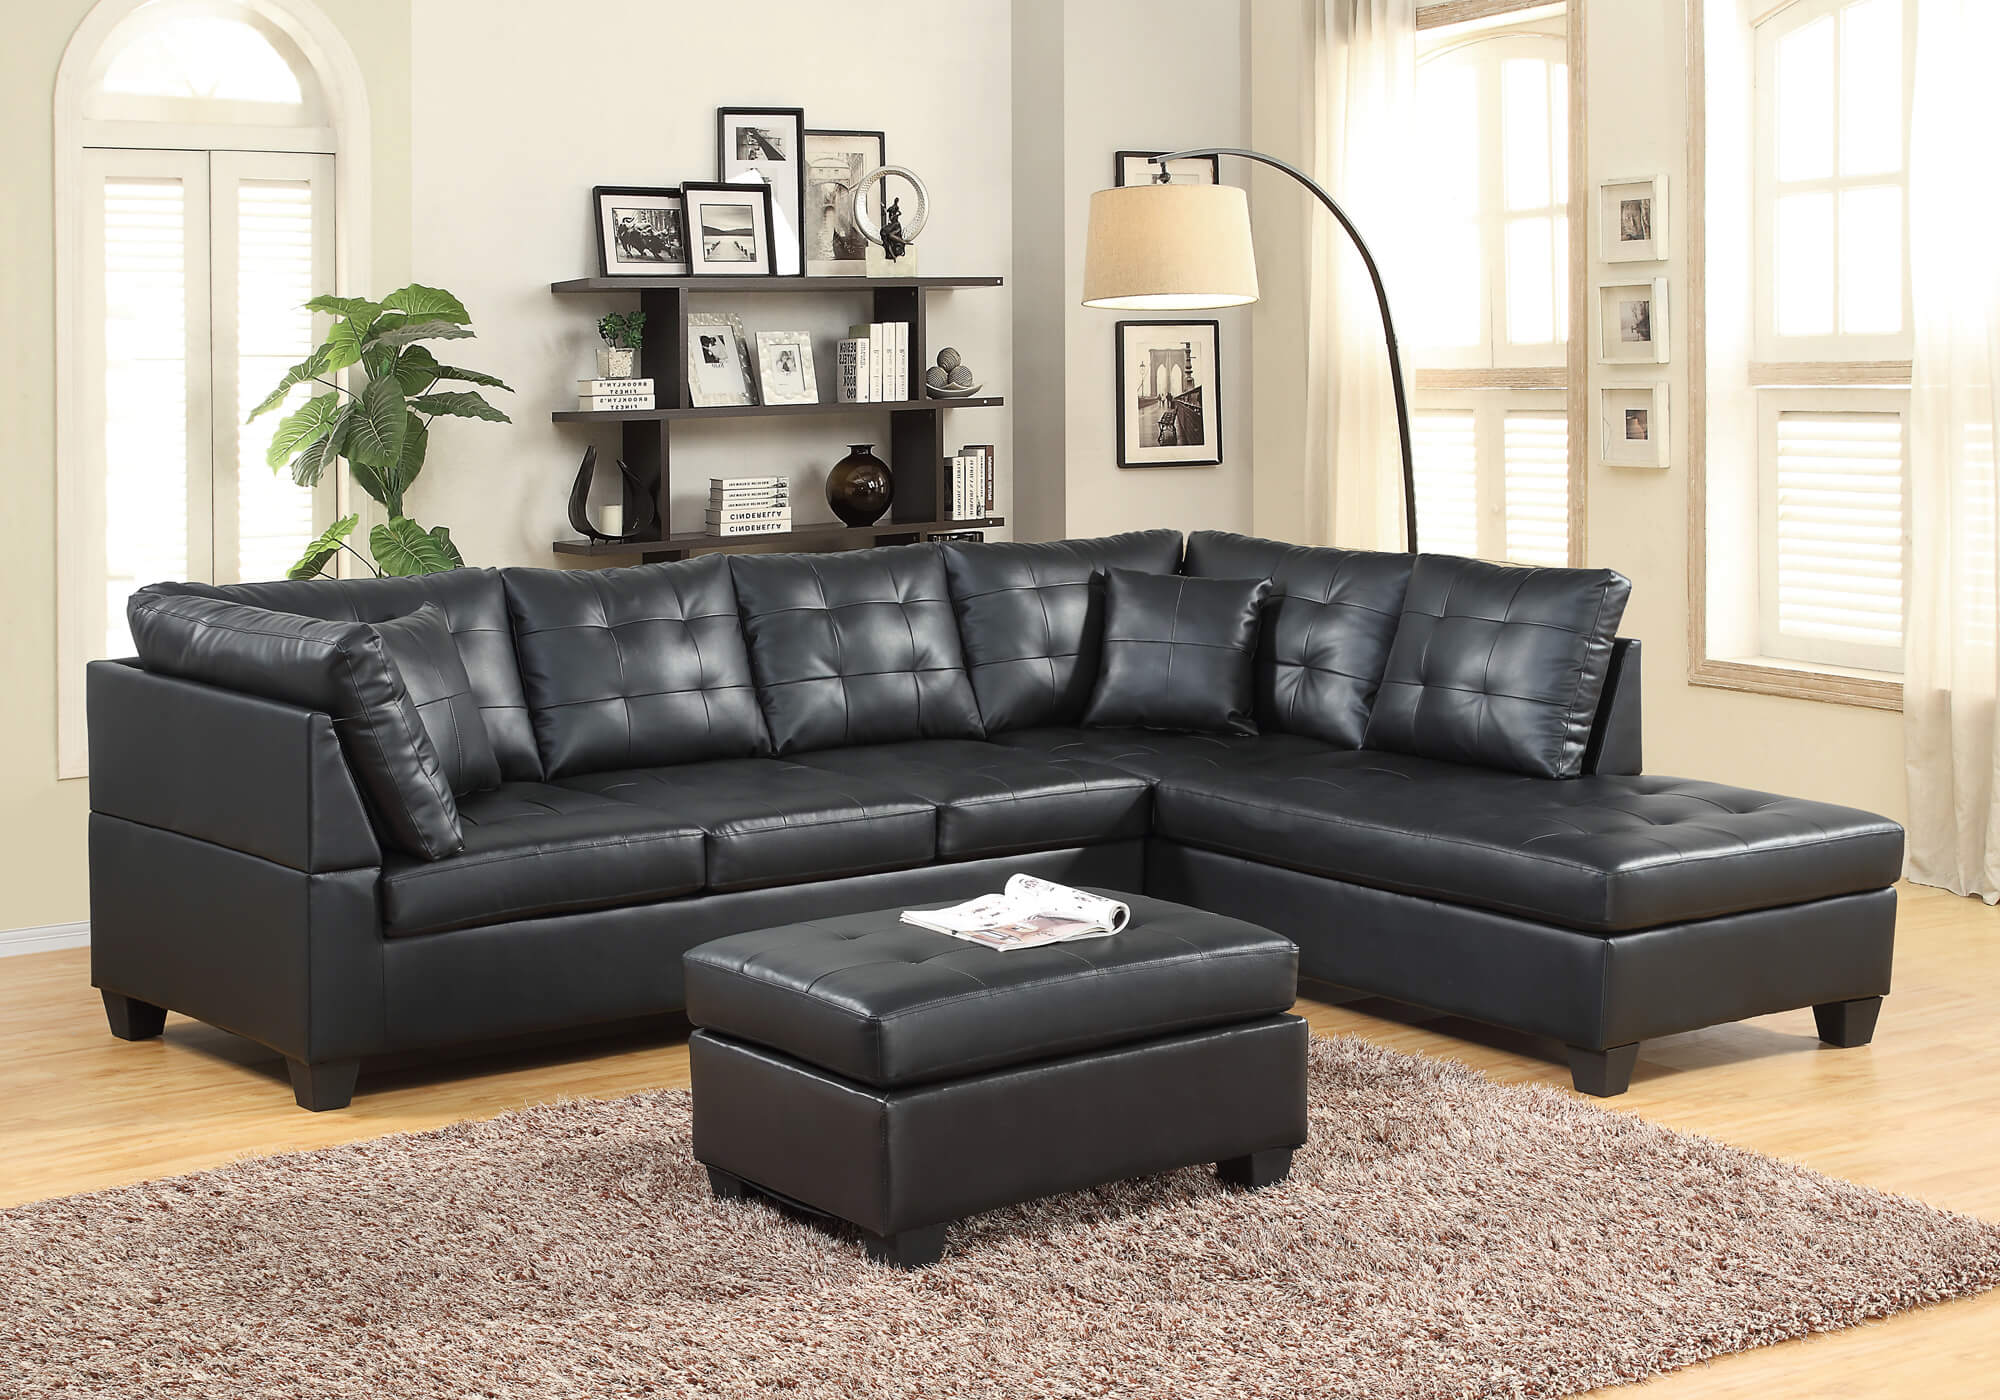 Black Leather Like Sectional Sectional Sofa Sets